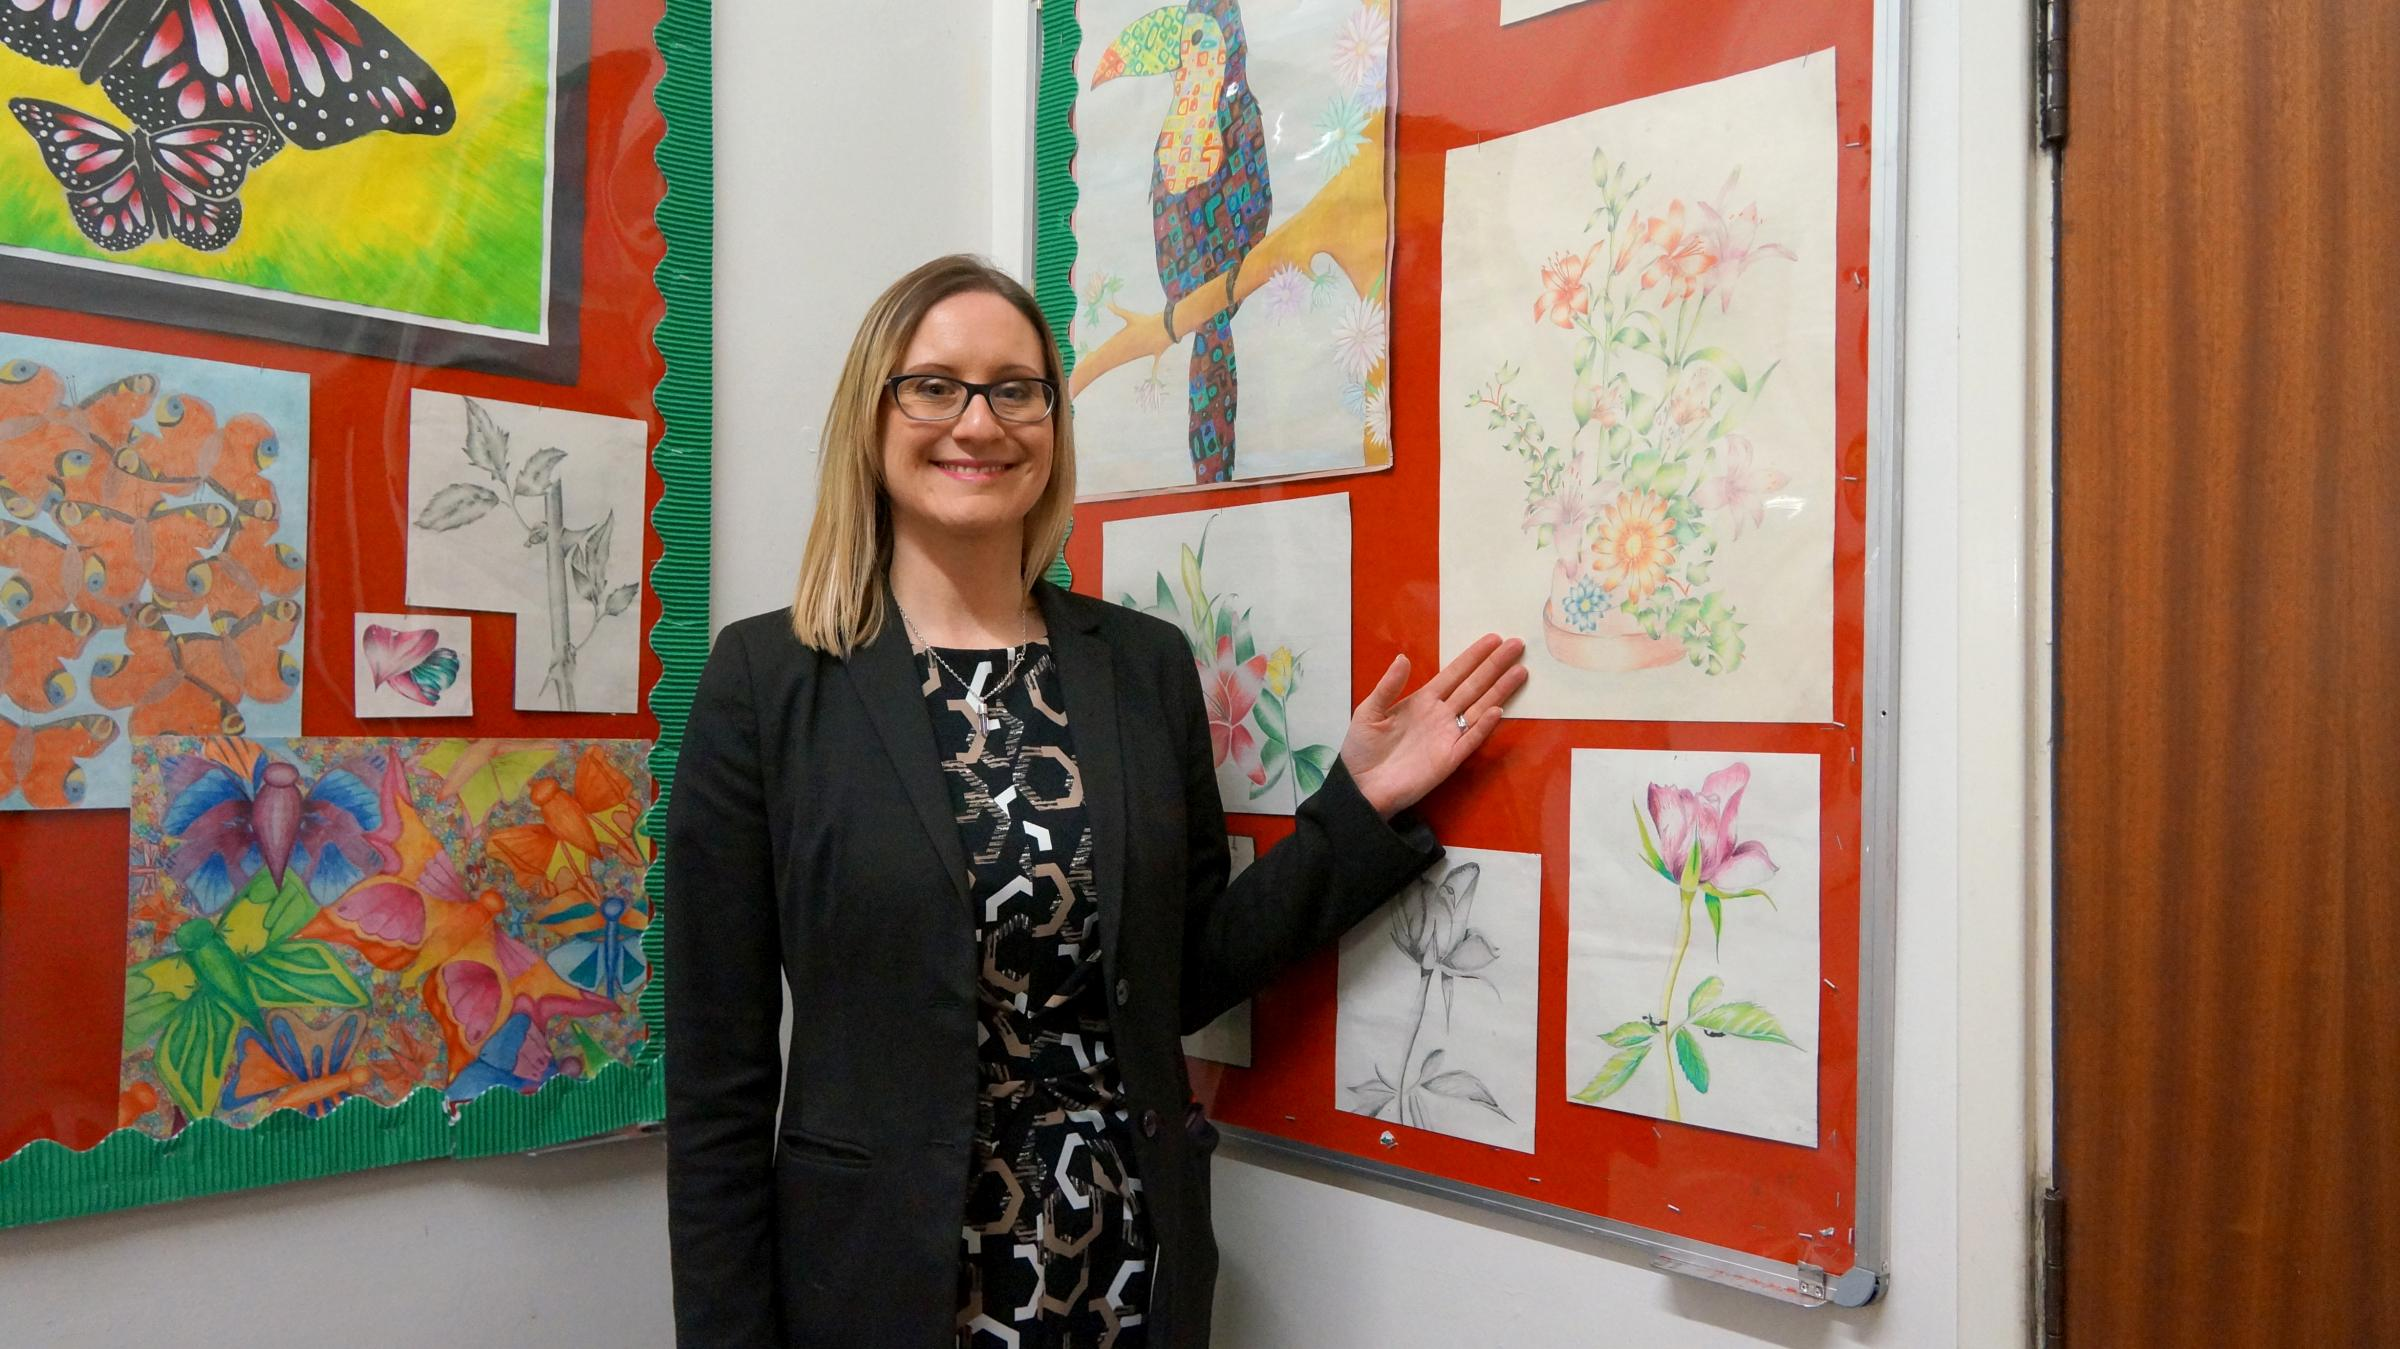 Emma Edwards-Morgan, Principal of The Link Academy, with artwork on display she made as a pupil at the school.